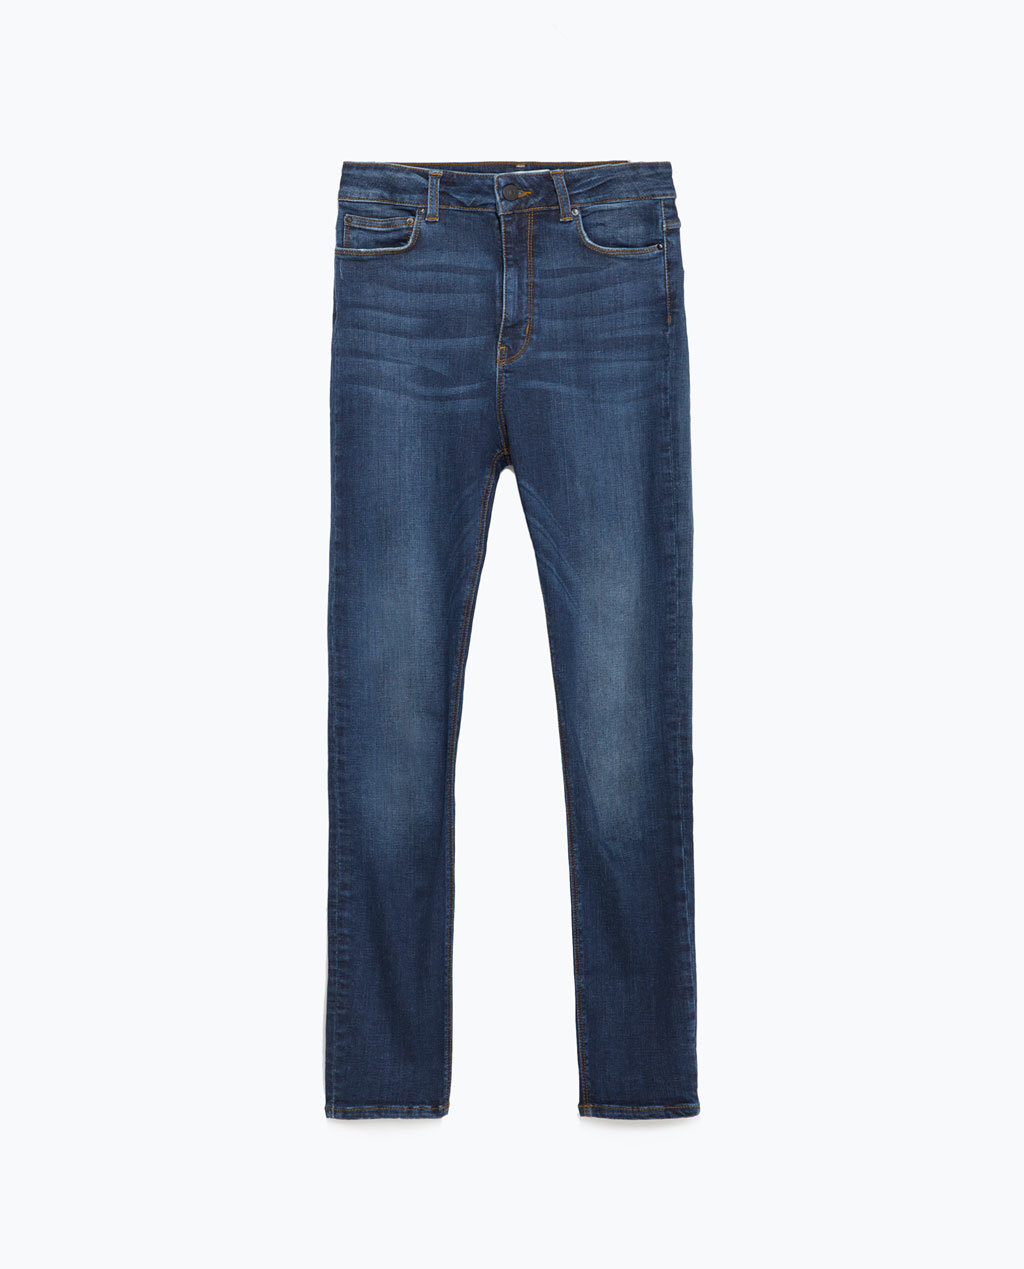 Jeans - length: standard; pattern: plain; pocket detail: traditional 5 pocket; style: slim leg; waist: mid/regular rise; predominant colour: navy; occasions: casual, creative work; fibres: cotton - stretch; jeans detail: shading down centre of thigh, dark wash, washed/faded; texture group: denim; pattern type: fabric; season: a/w 2015; wardrobe: basic